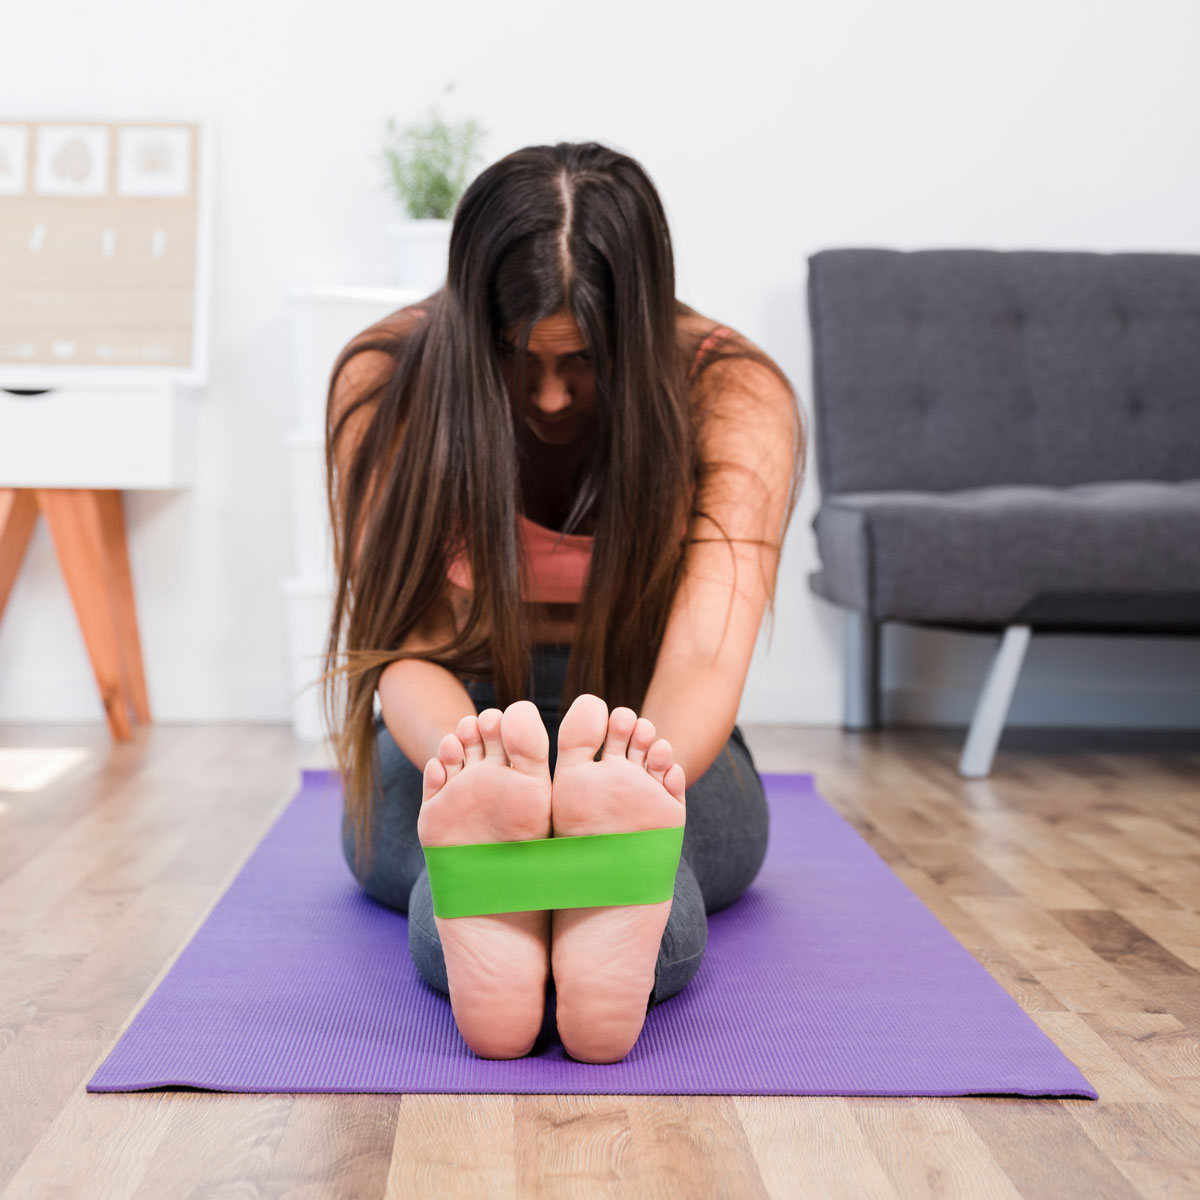 Photo of woman sitting using a Yoga prop to stretch